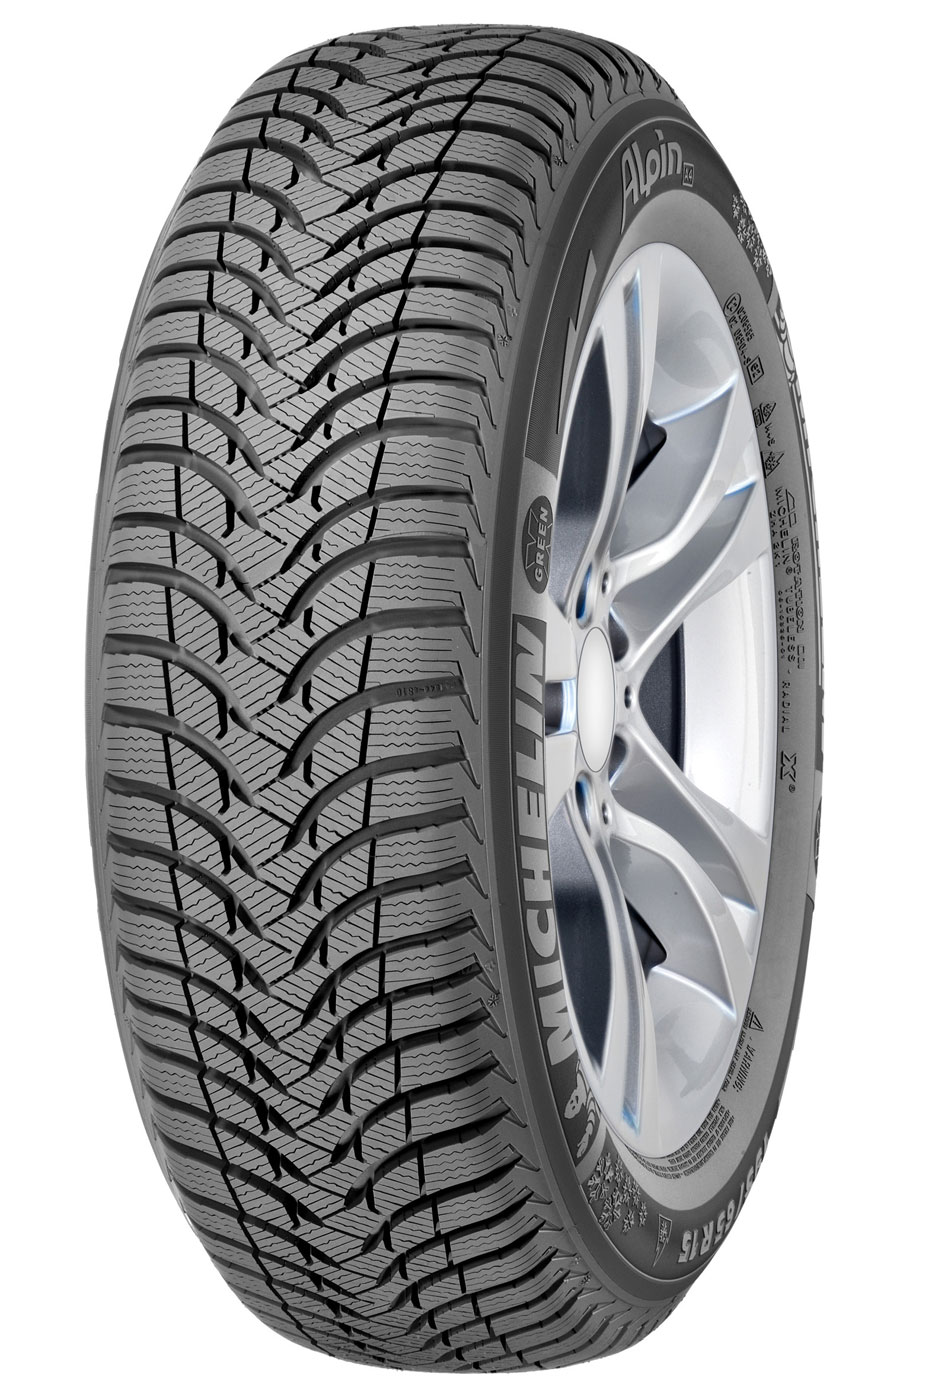 Michelin Alpin A4 225/55 R17 97H AO